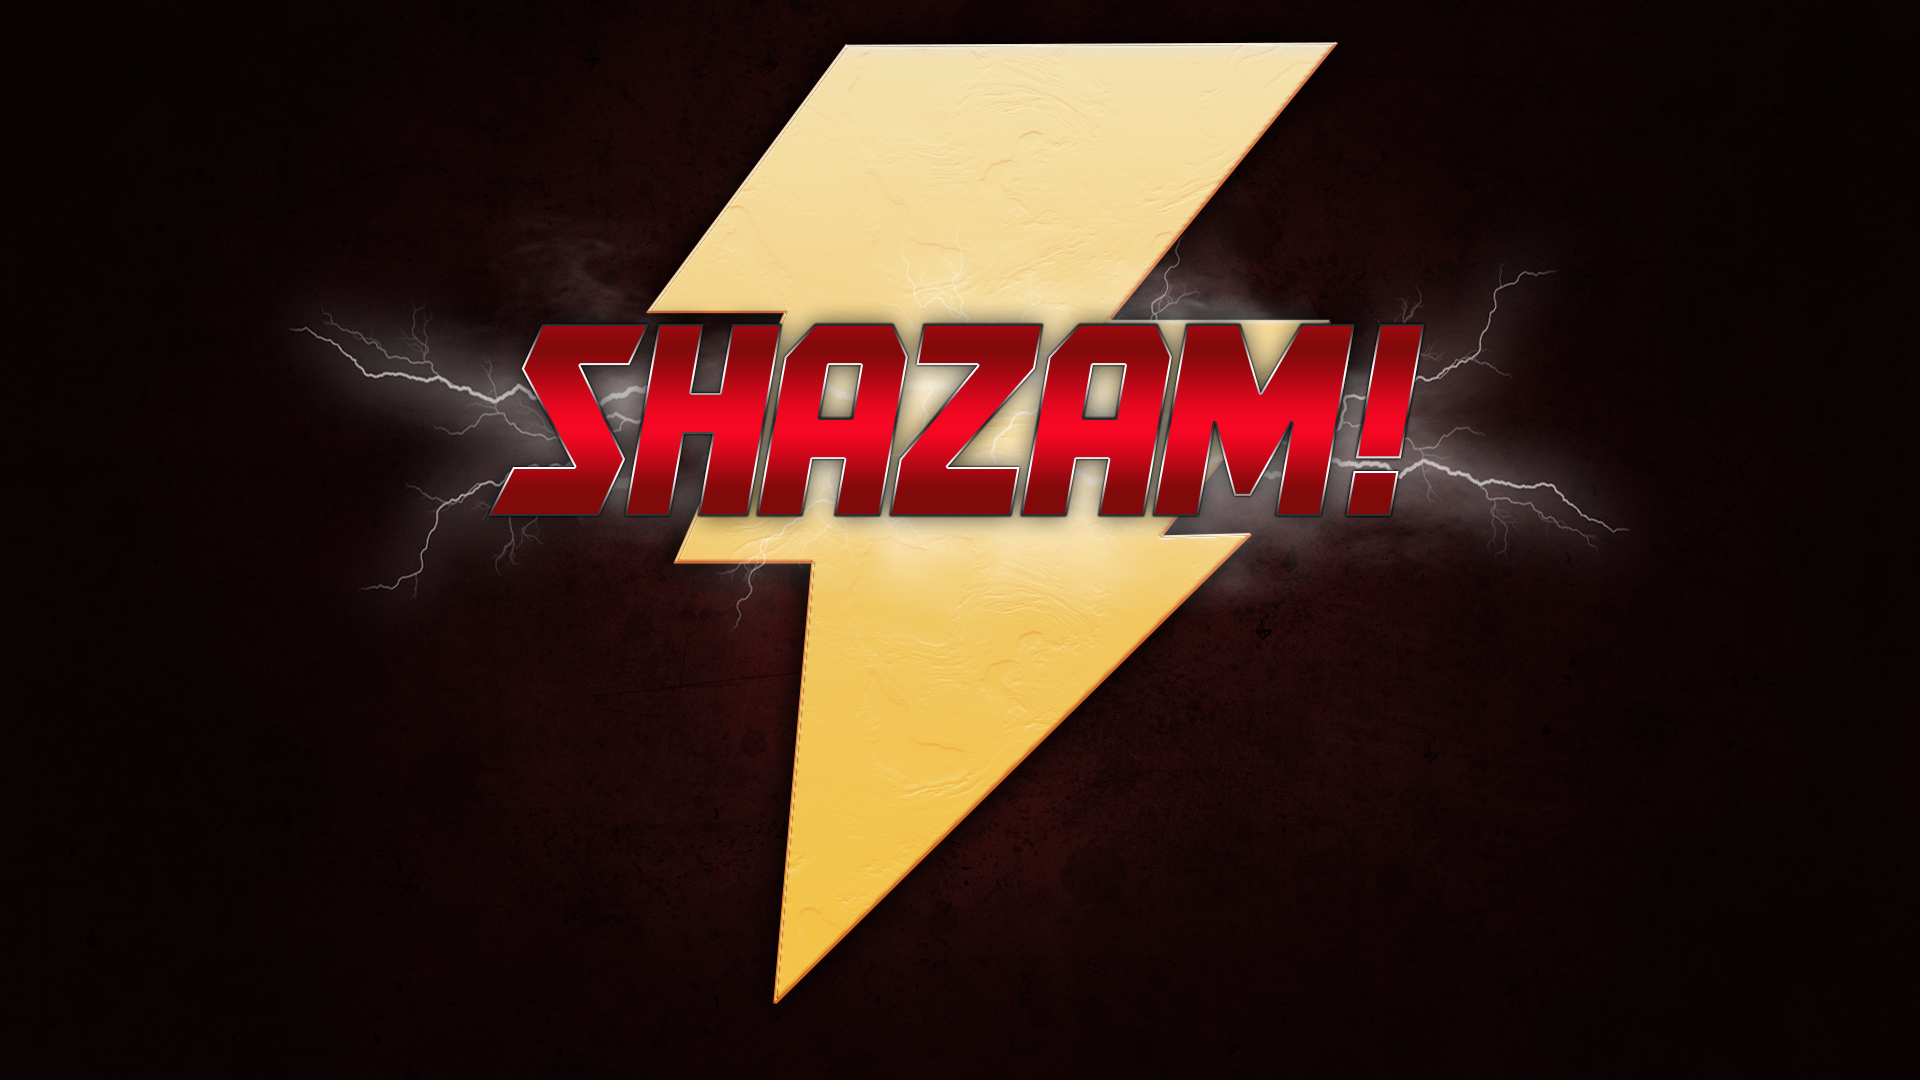 Shazam 2019 Wallpapers High Quality Download Free